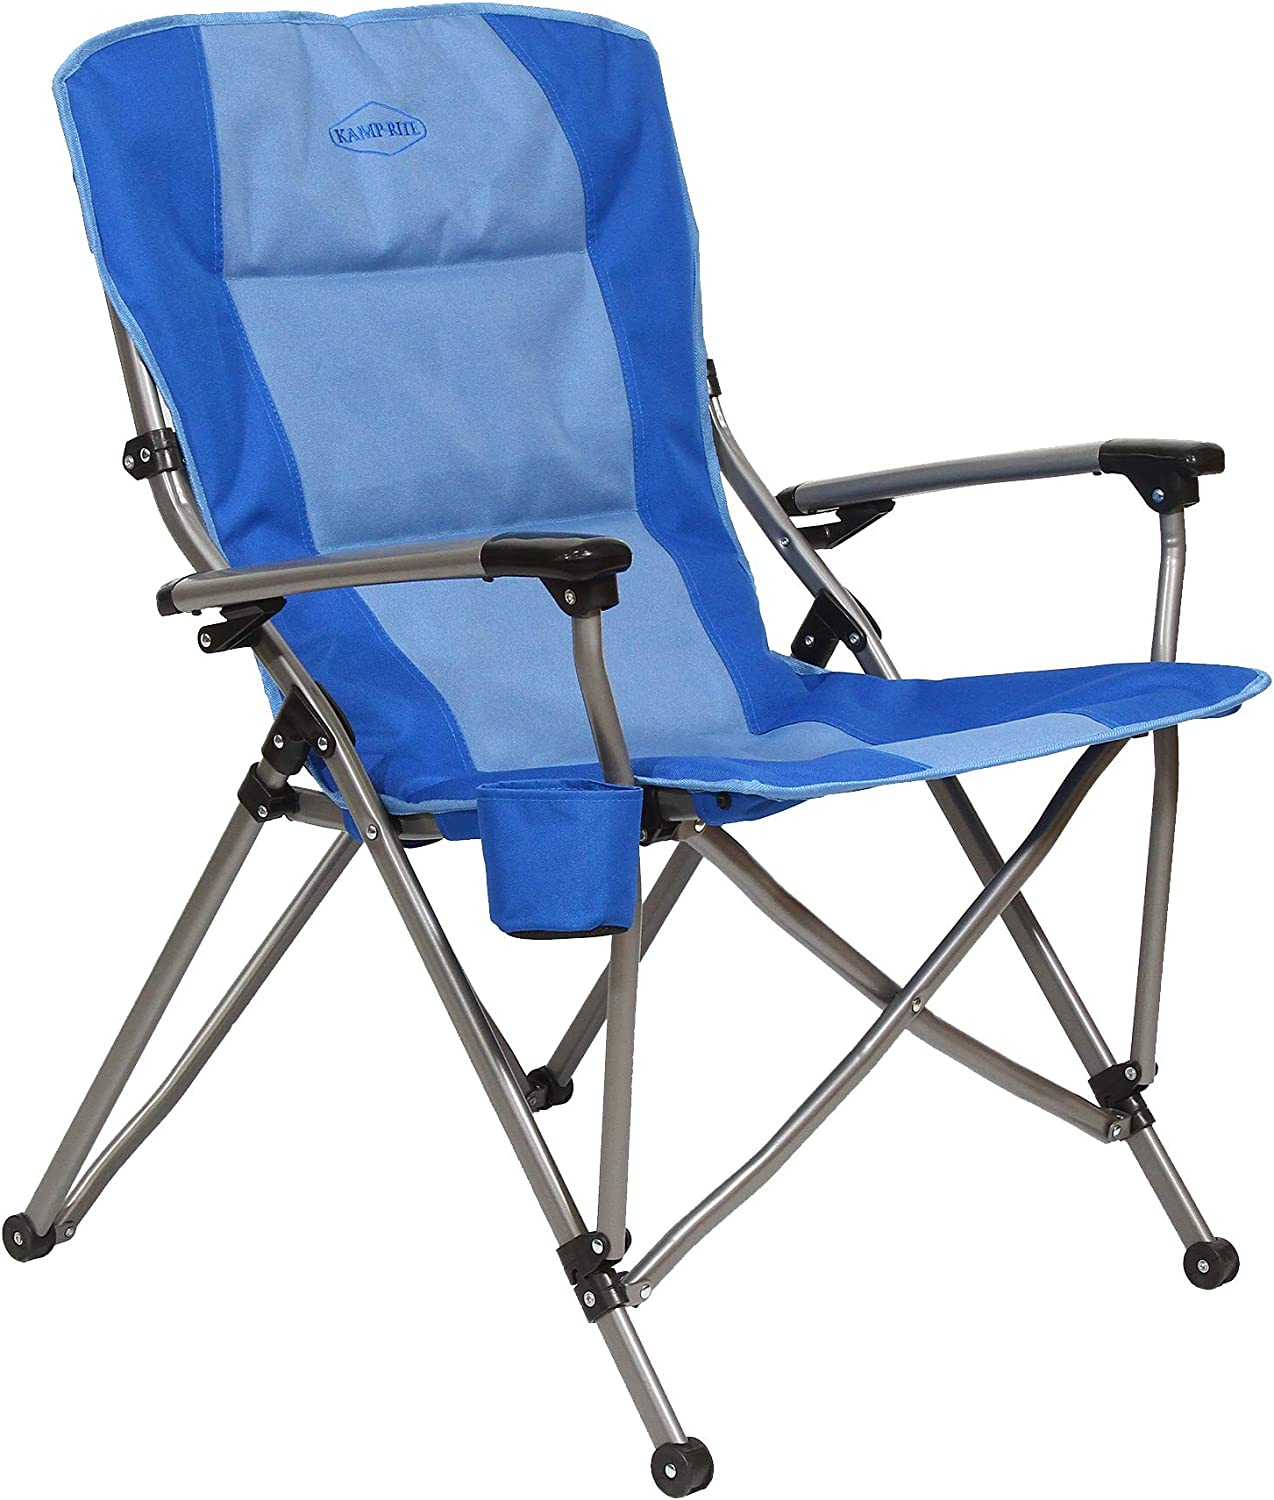 Kamp-Rite Soft Padded Our shop most Spring new work popular Hard Arm Camping Chair wit Folding Outdoor